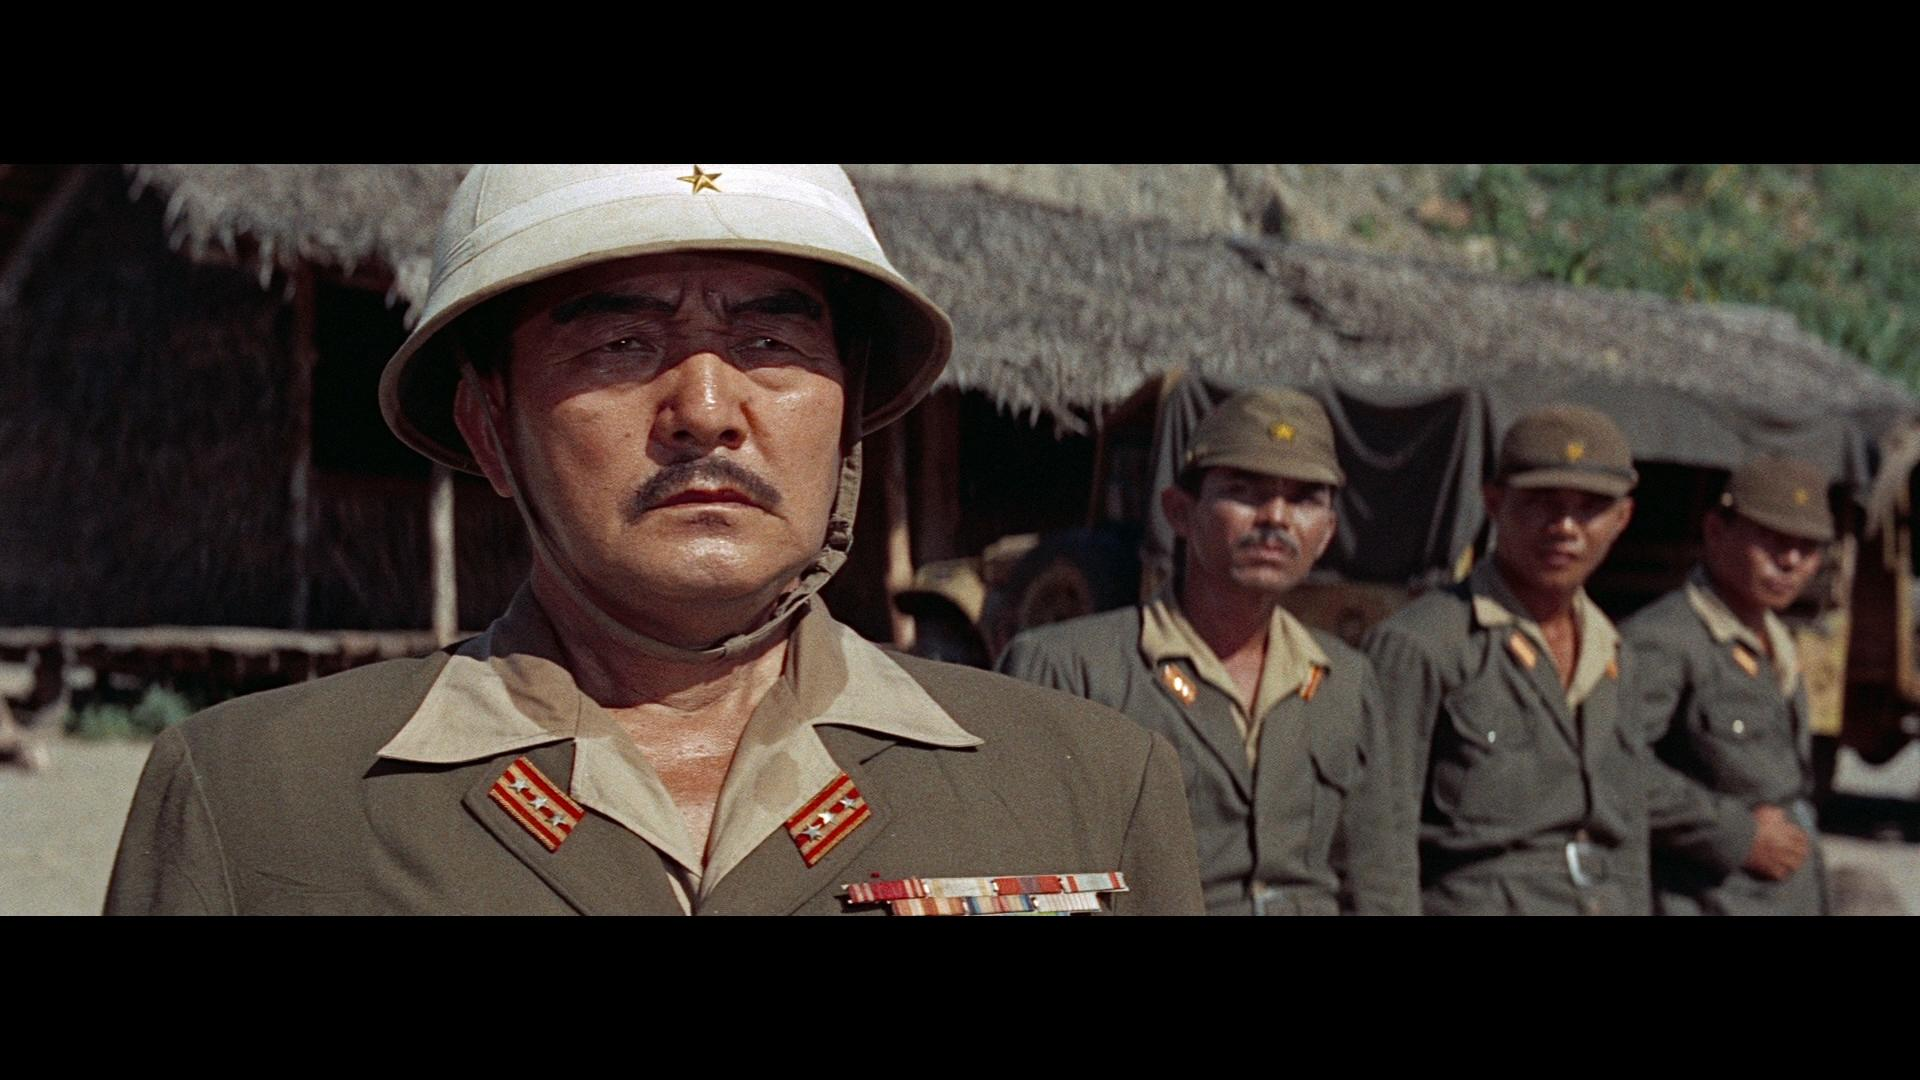 Brian Terrill's 100 Film Favorites - #40: The Bridge on the River Kwai